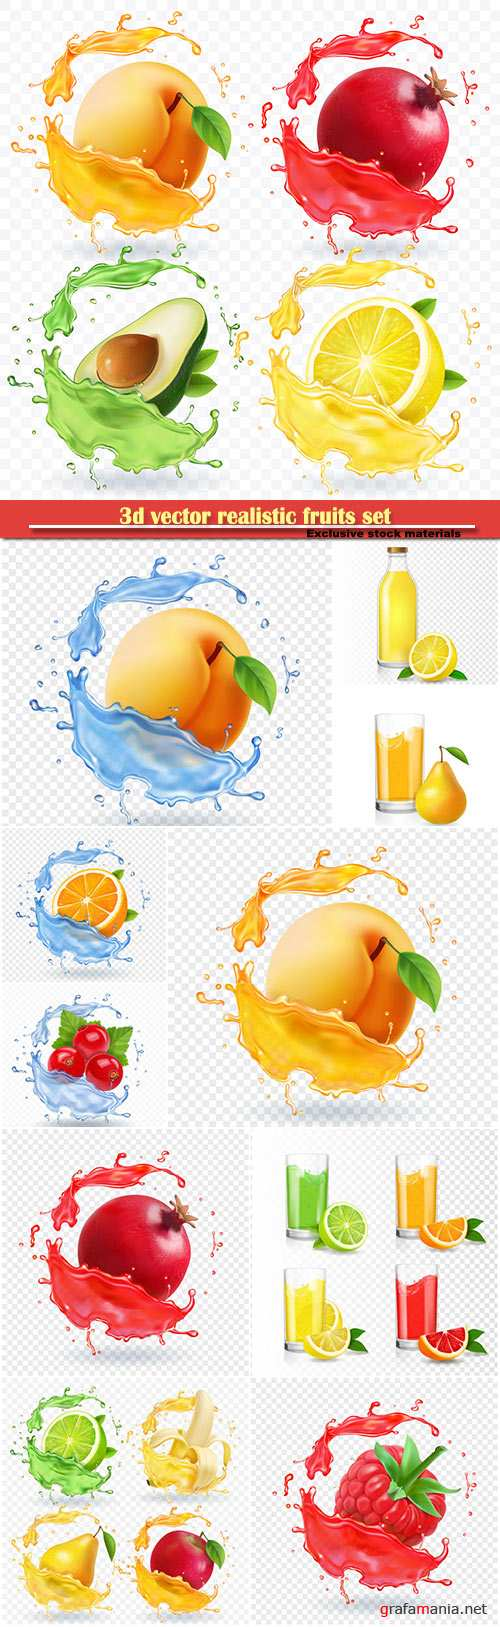 3d vector realistic fruits set, banana, apple, lime, pear juice splashes